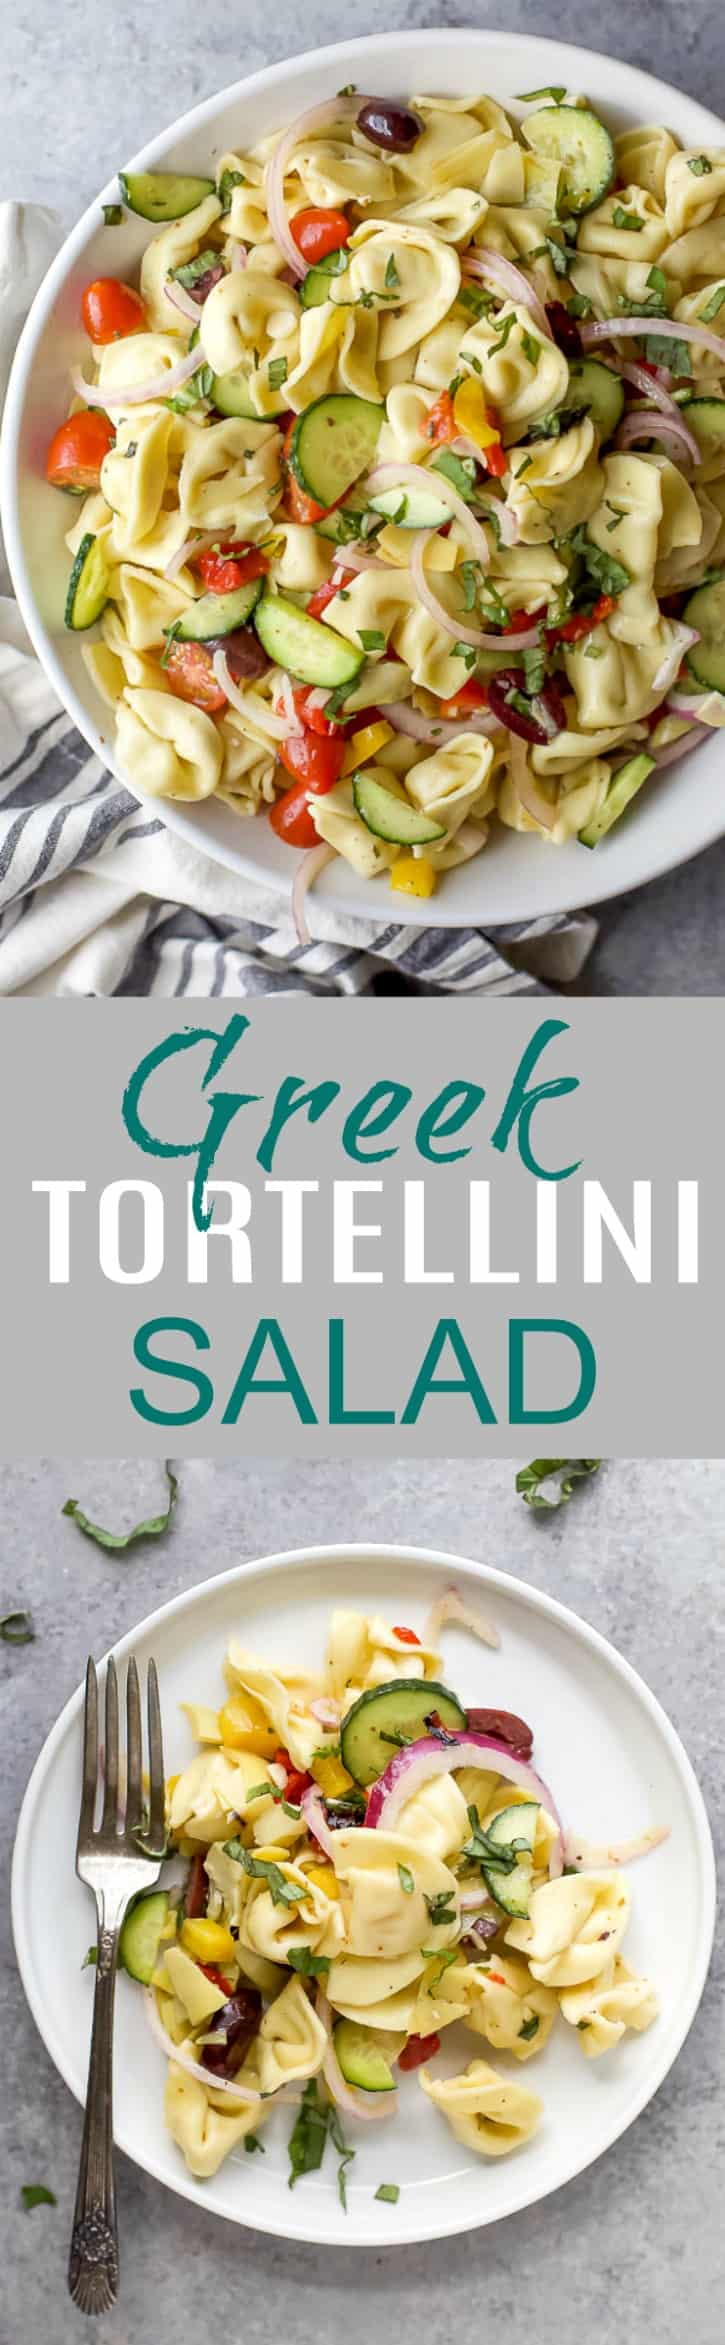 Easy 30 Minute Greek Tortellini Salad tossed with mediterranean veggies and a homemade greek vinaigrette for a lighter healthier taste. This Tortellini Pasta Salad is guaranteed to be the star at your summer BBQ's.